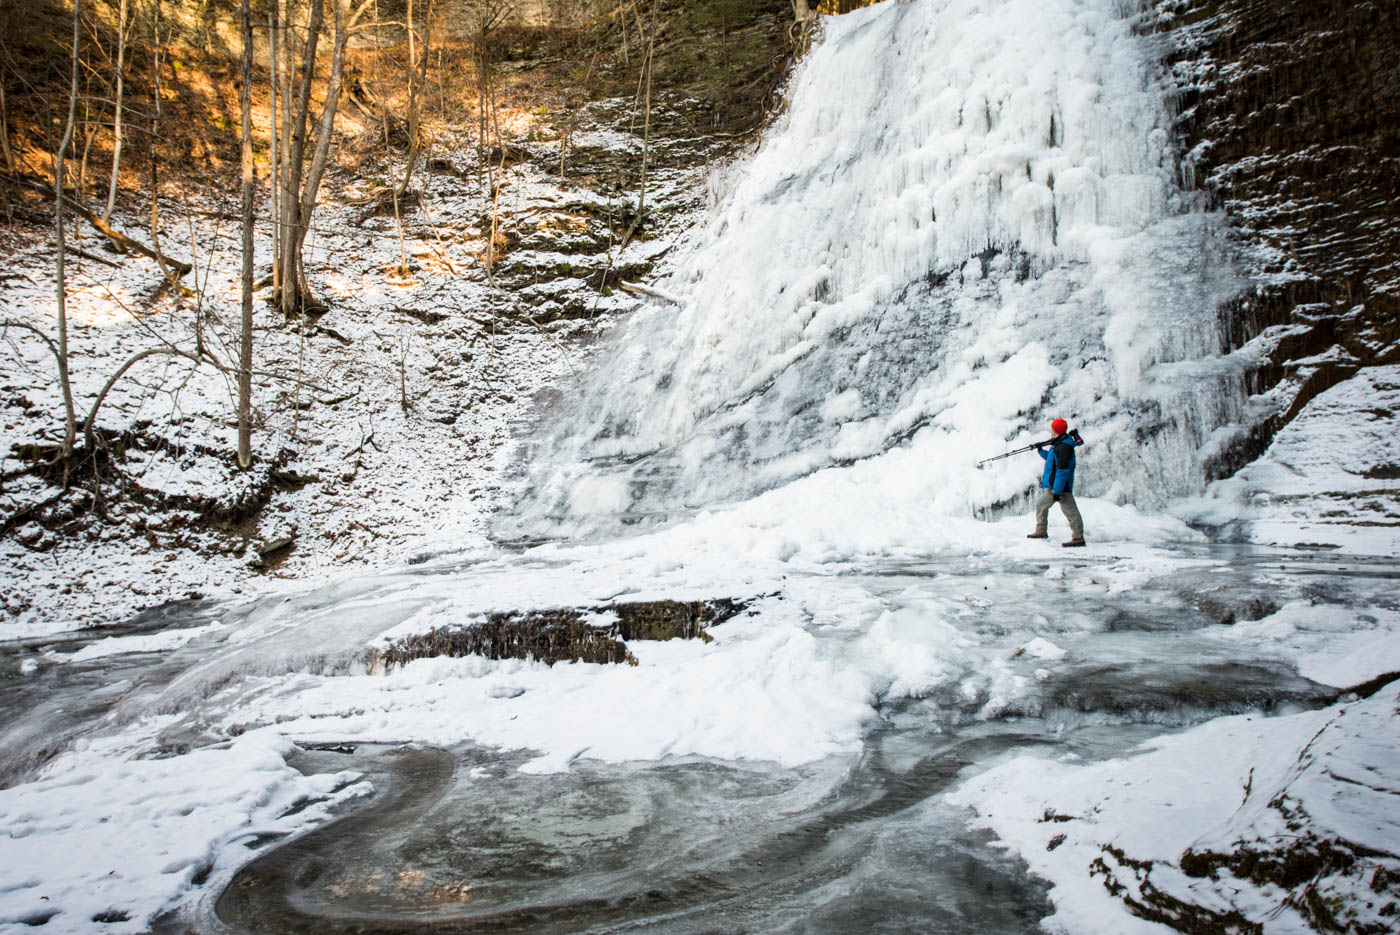 Lick Brook Falls; Paul for scale